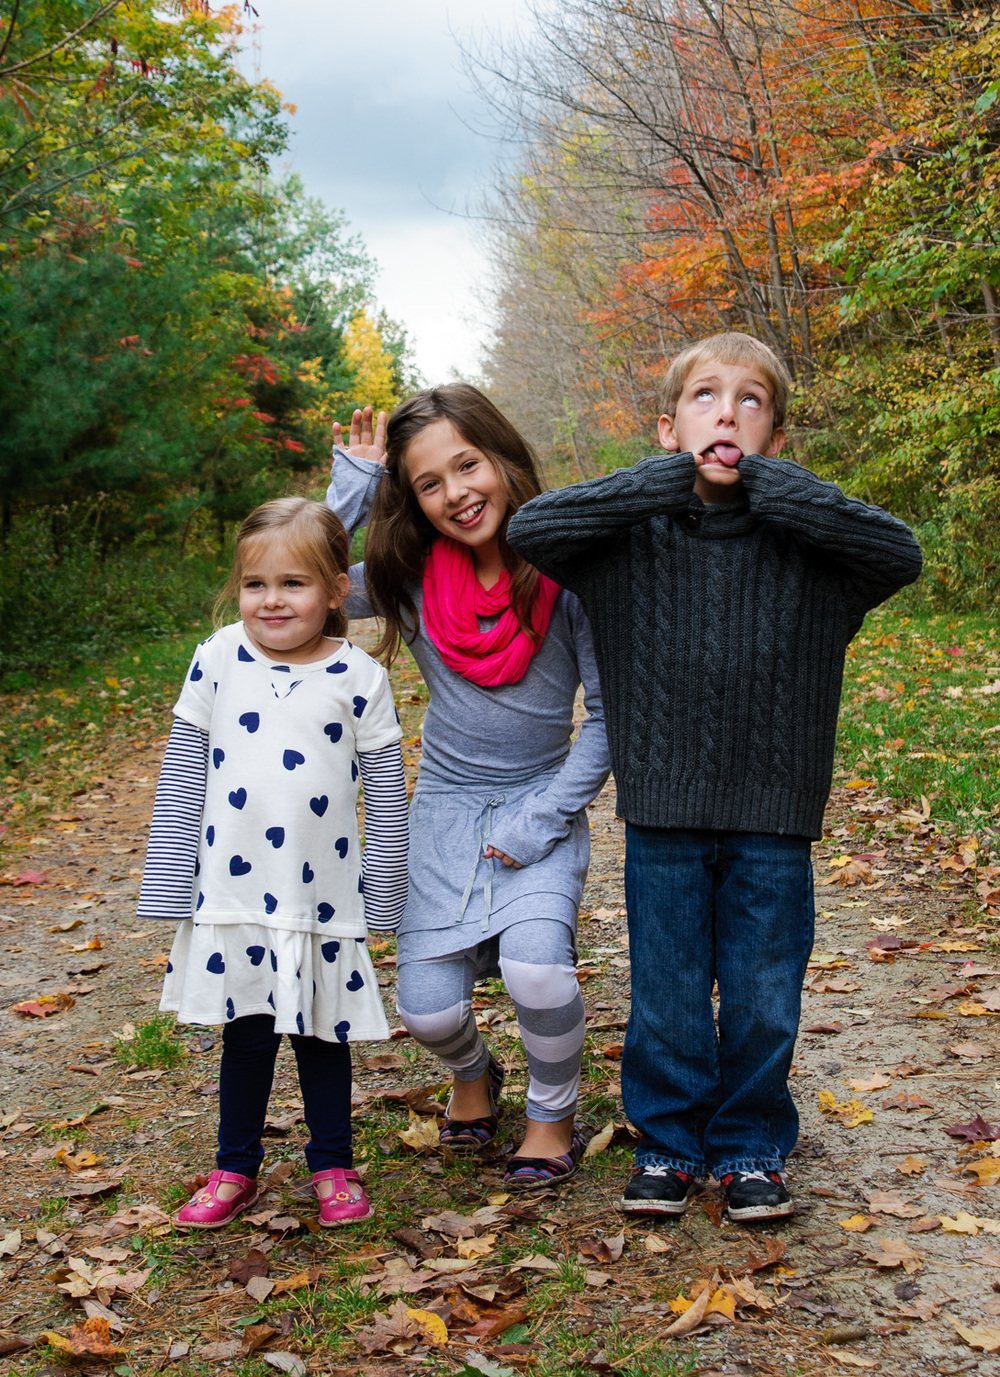 Squire Family Oct 20 2013-6.jpg